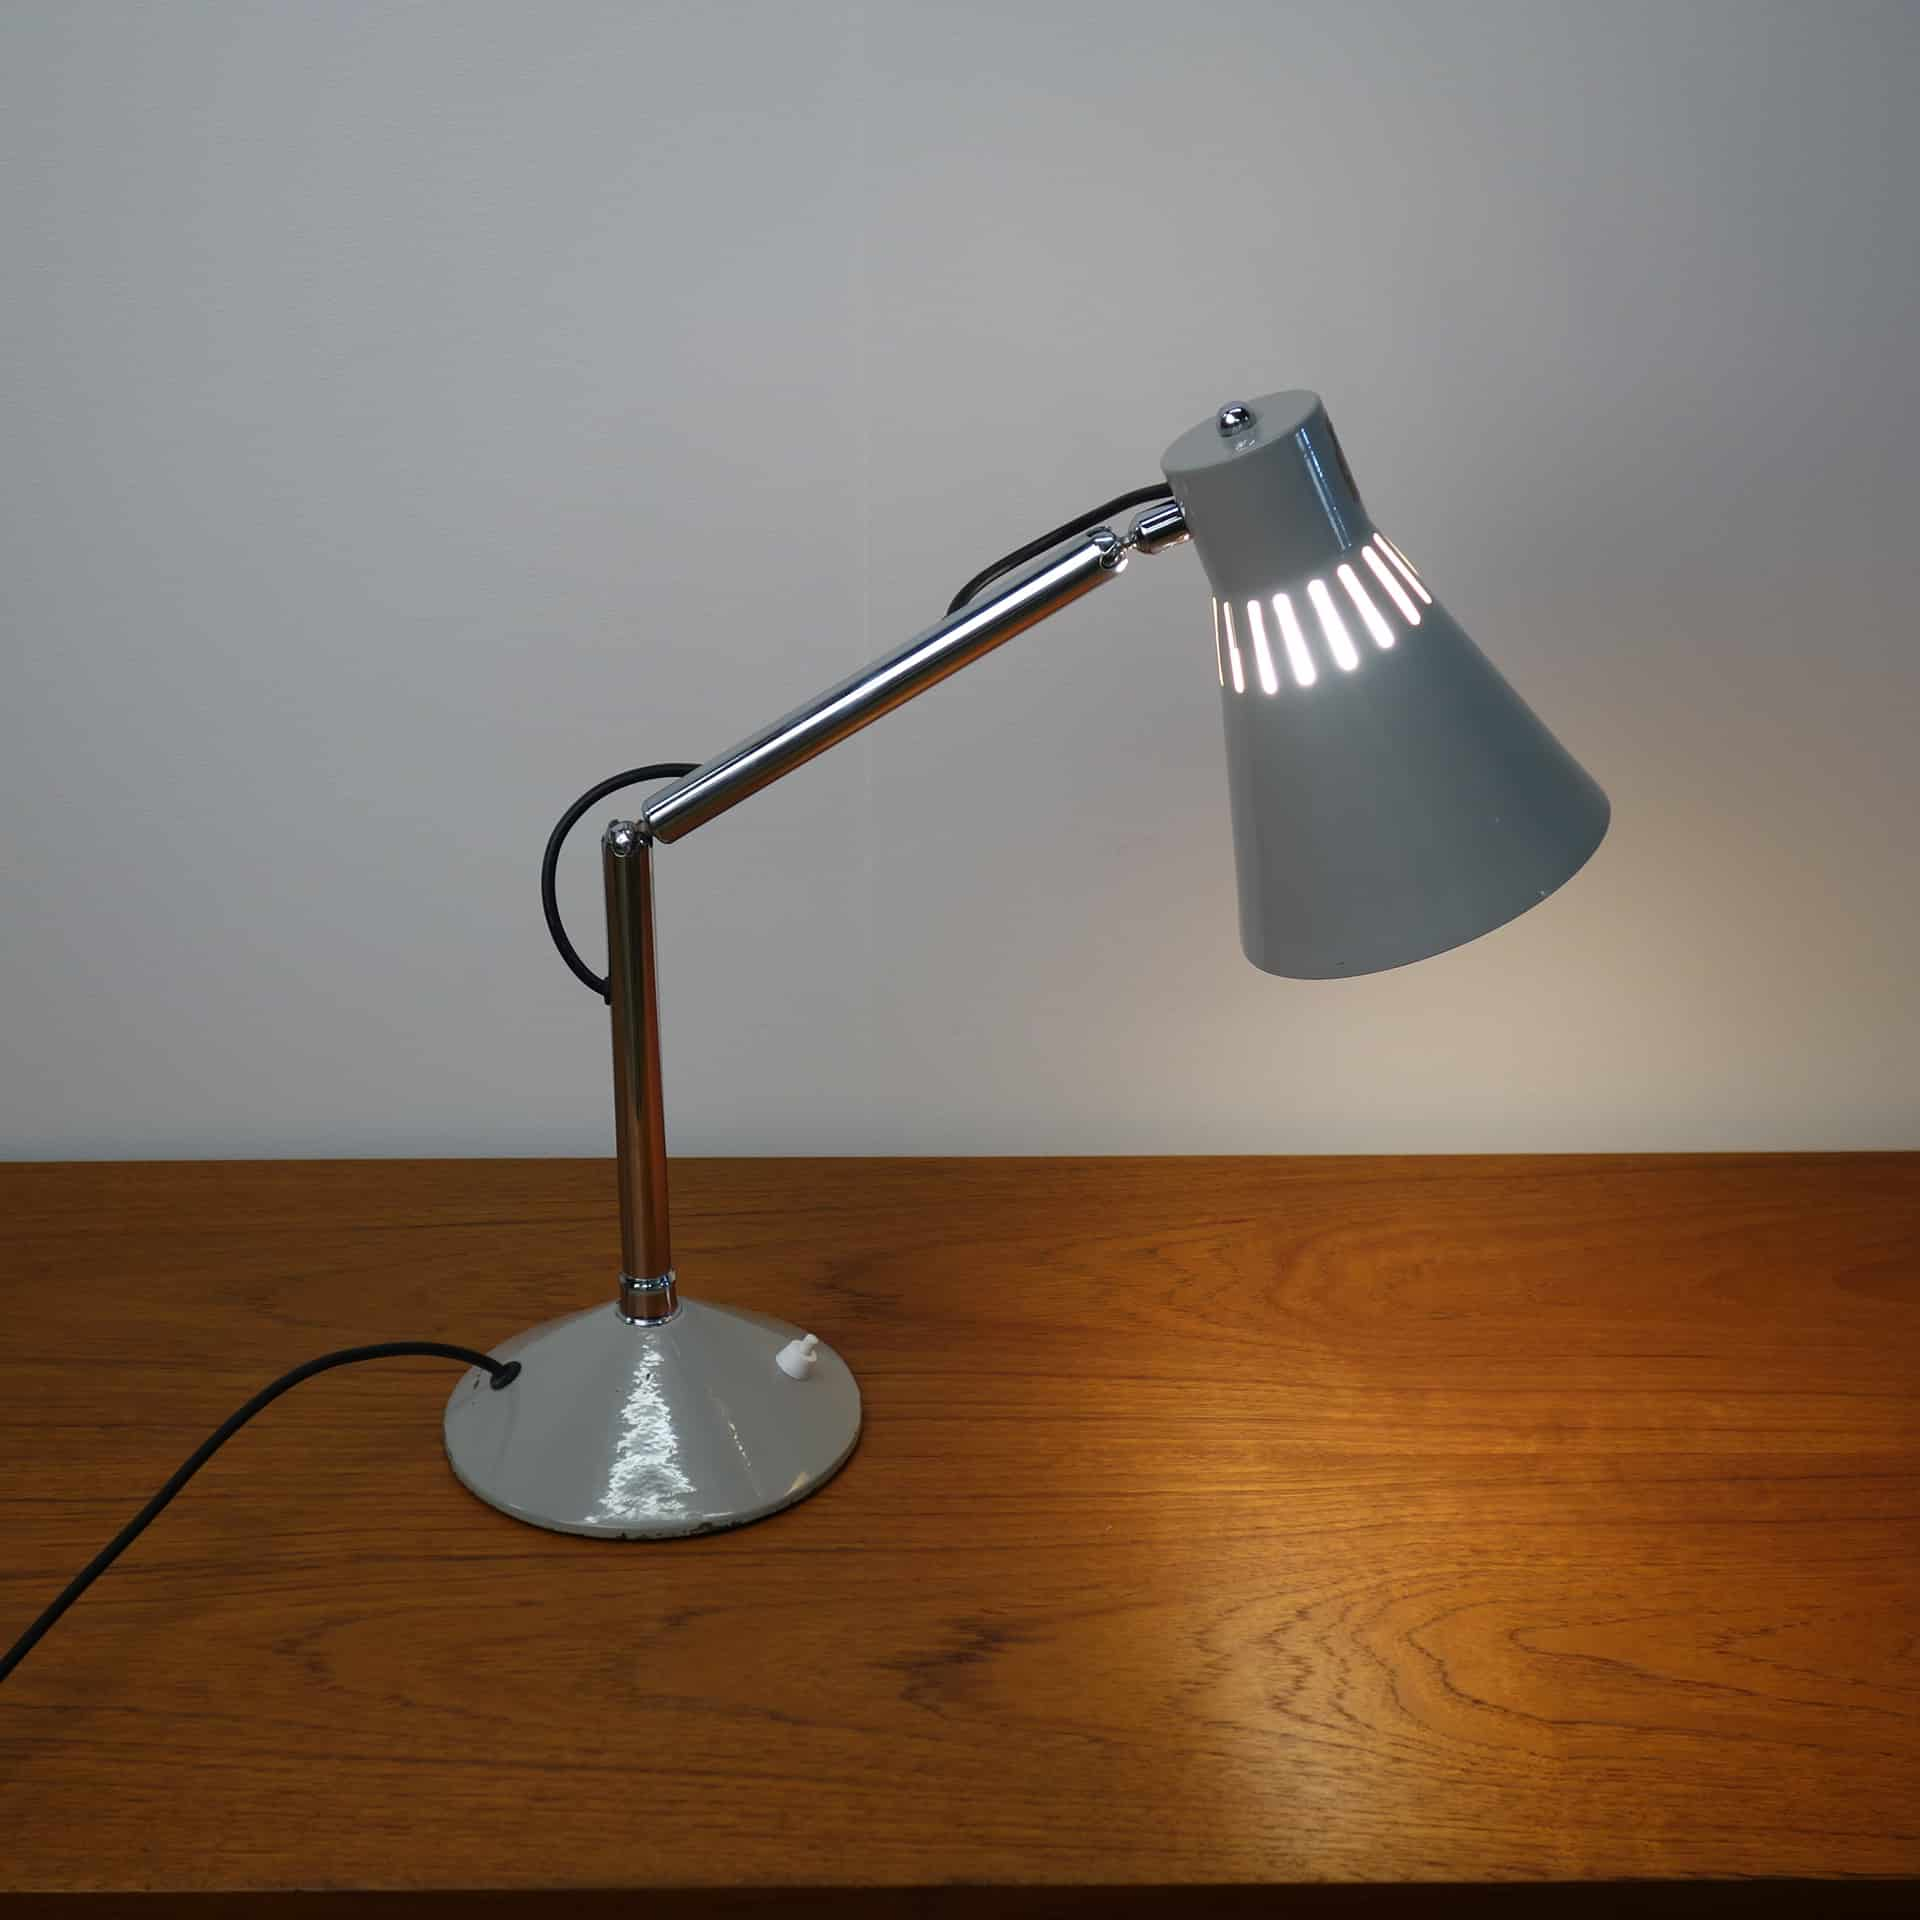 1950s adjustable desk lamp by Pifco